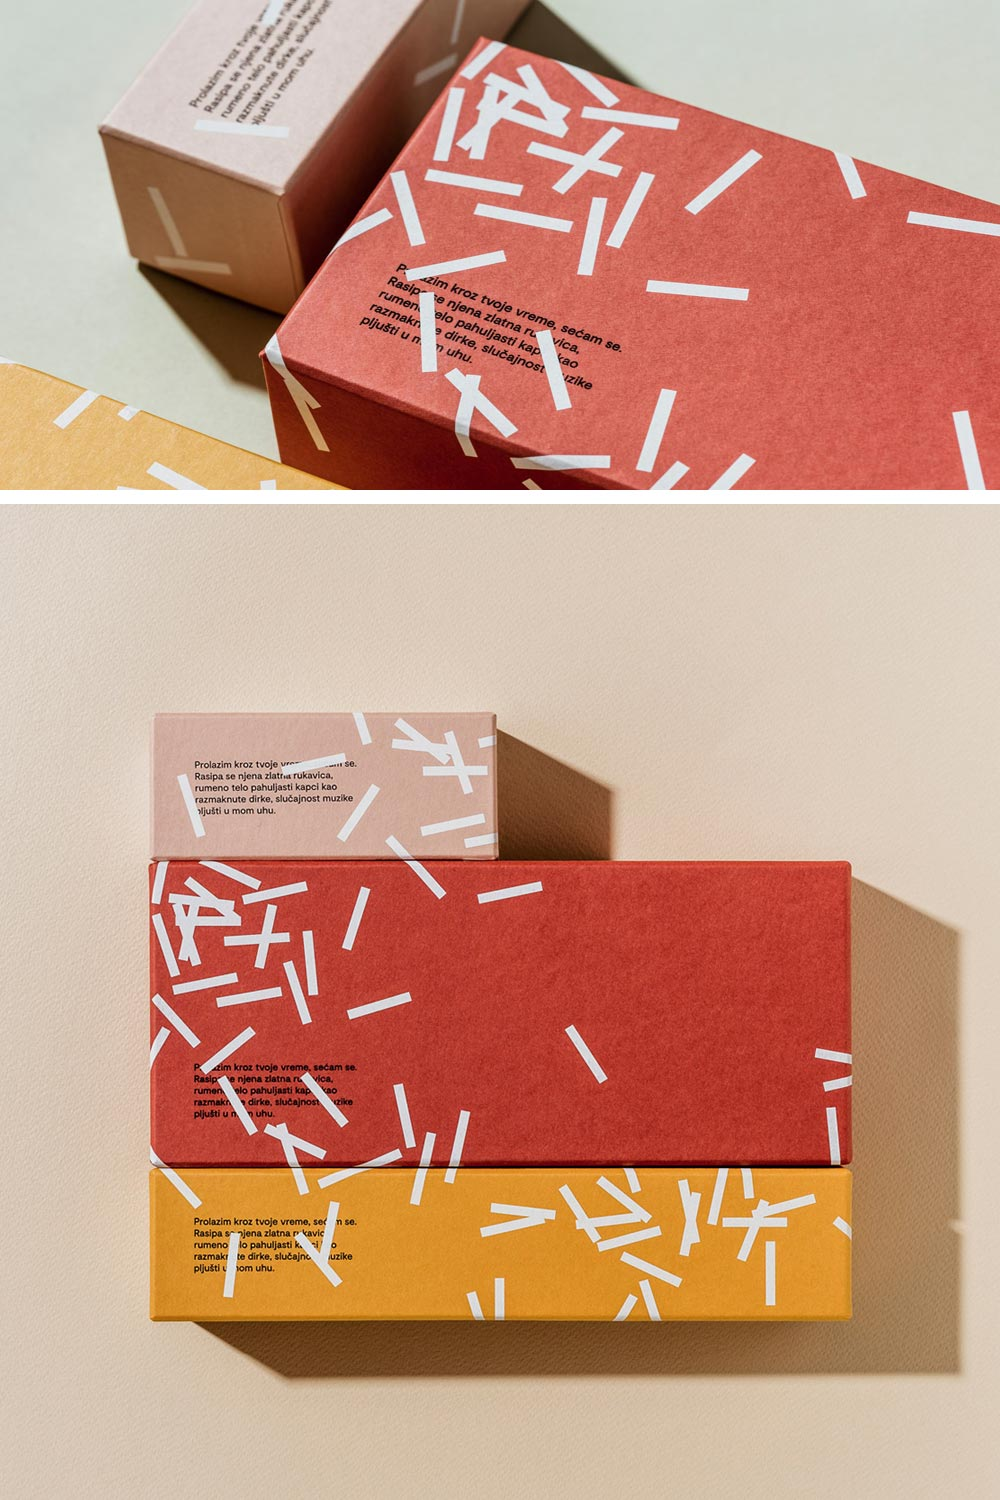 Fini confetti package design